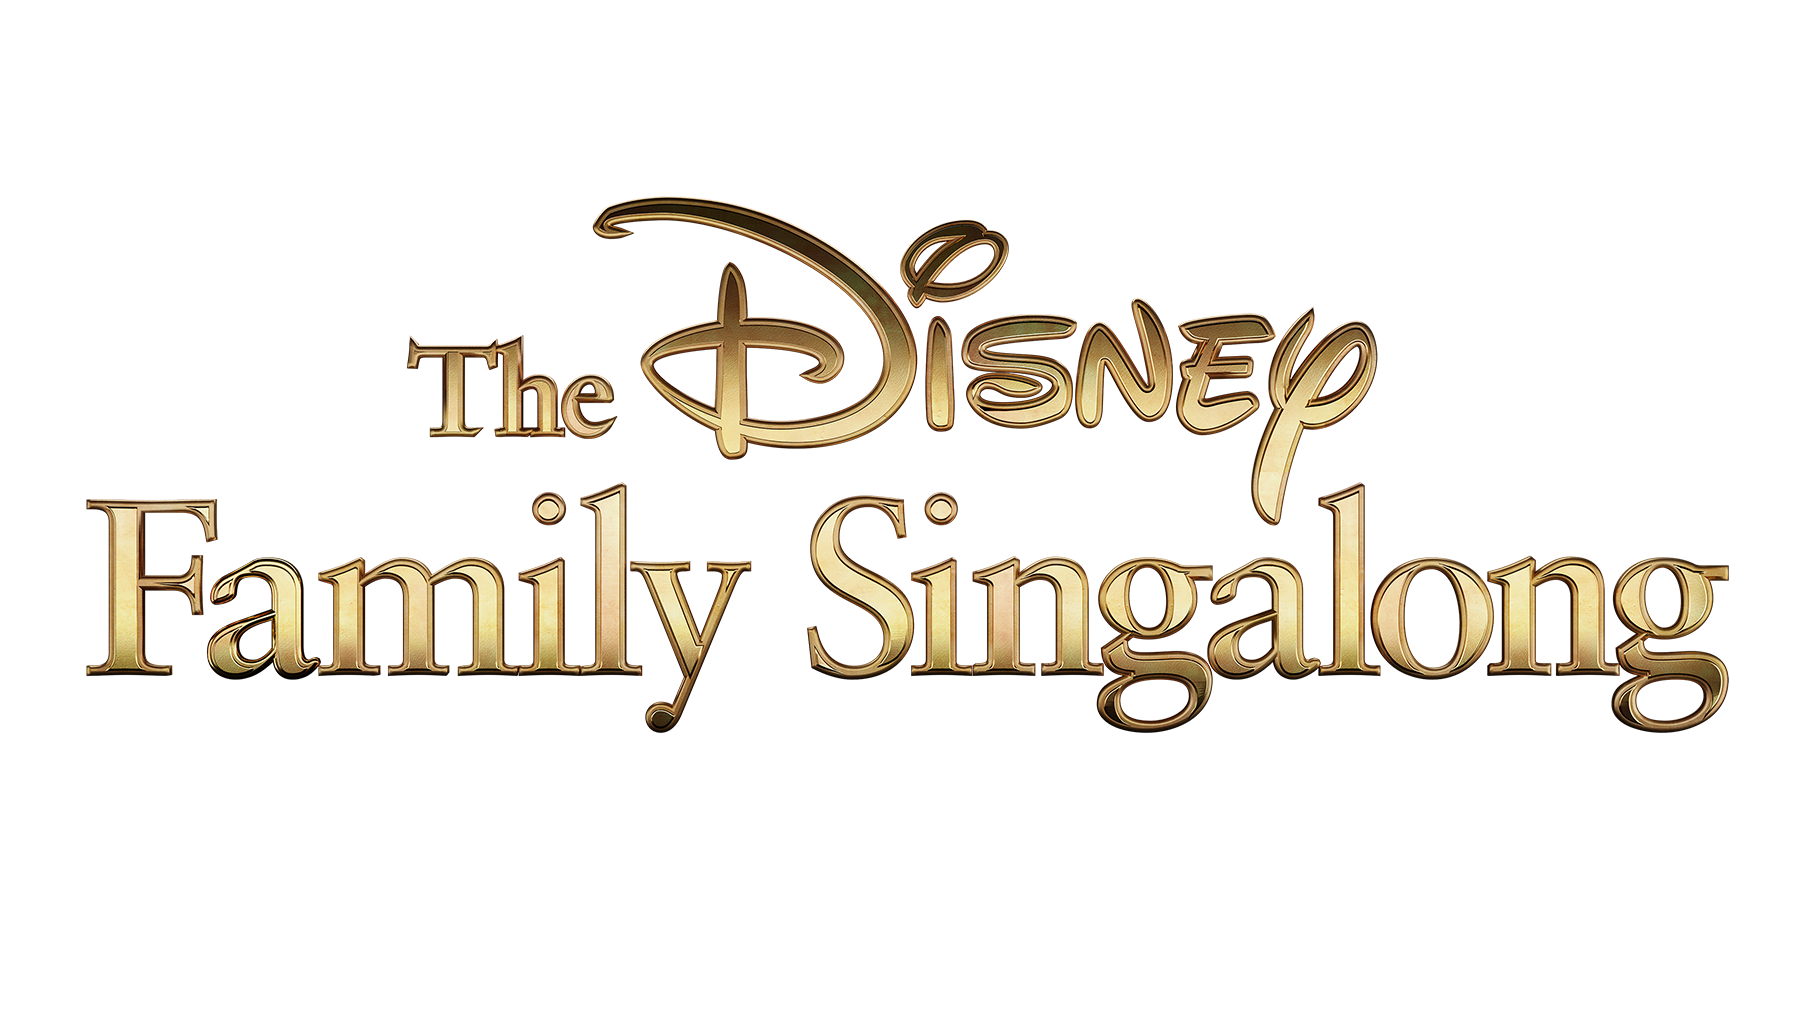 The Disney Family Singalong Abc Sets Musical Tv Special Deadline